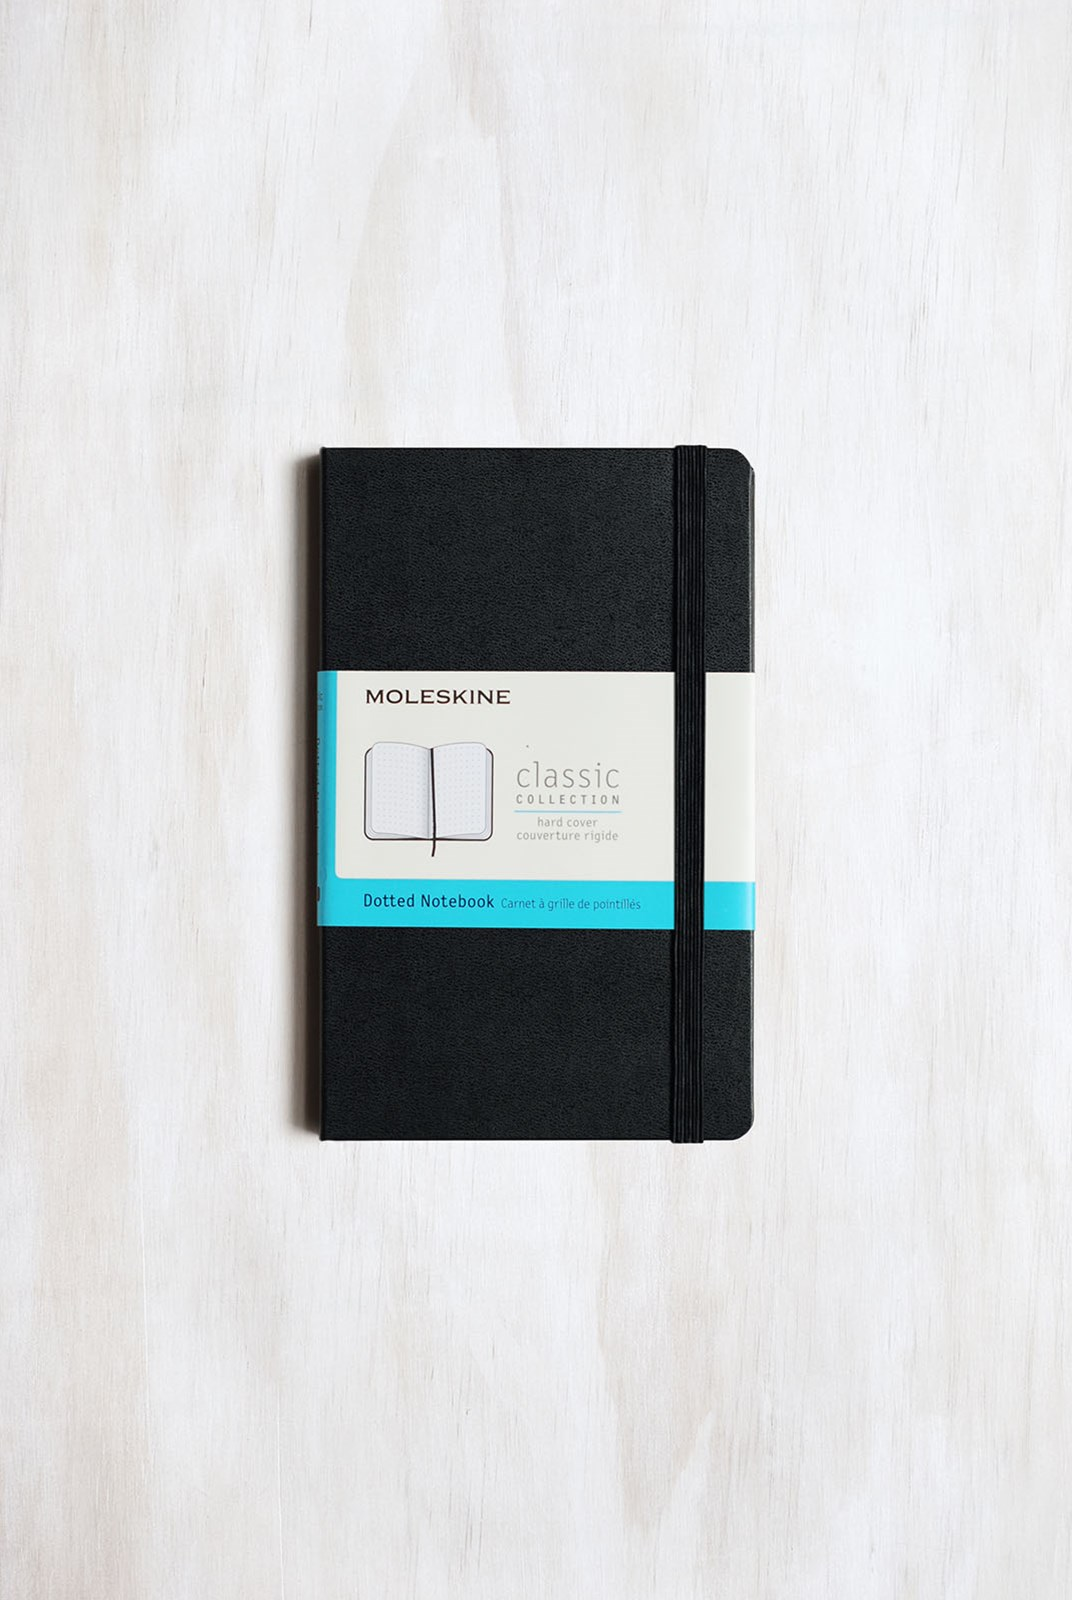 Moleskine - Classic Soft Cover Notebook - Dot Grid - Pocket - Black